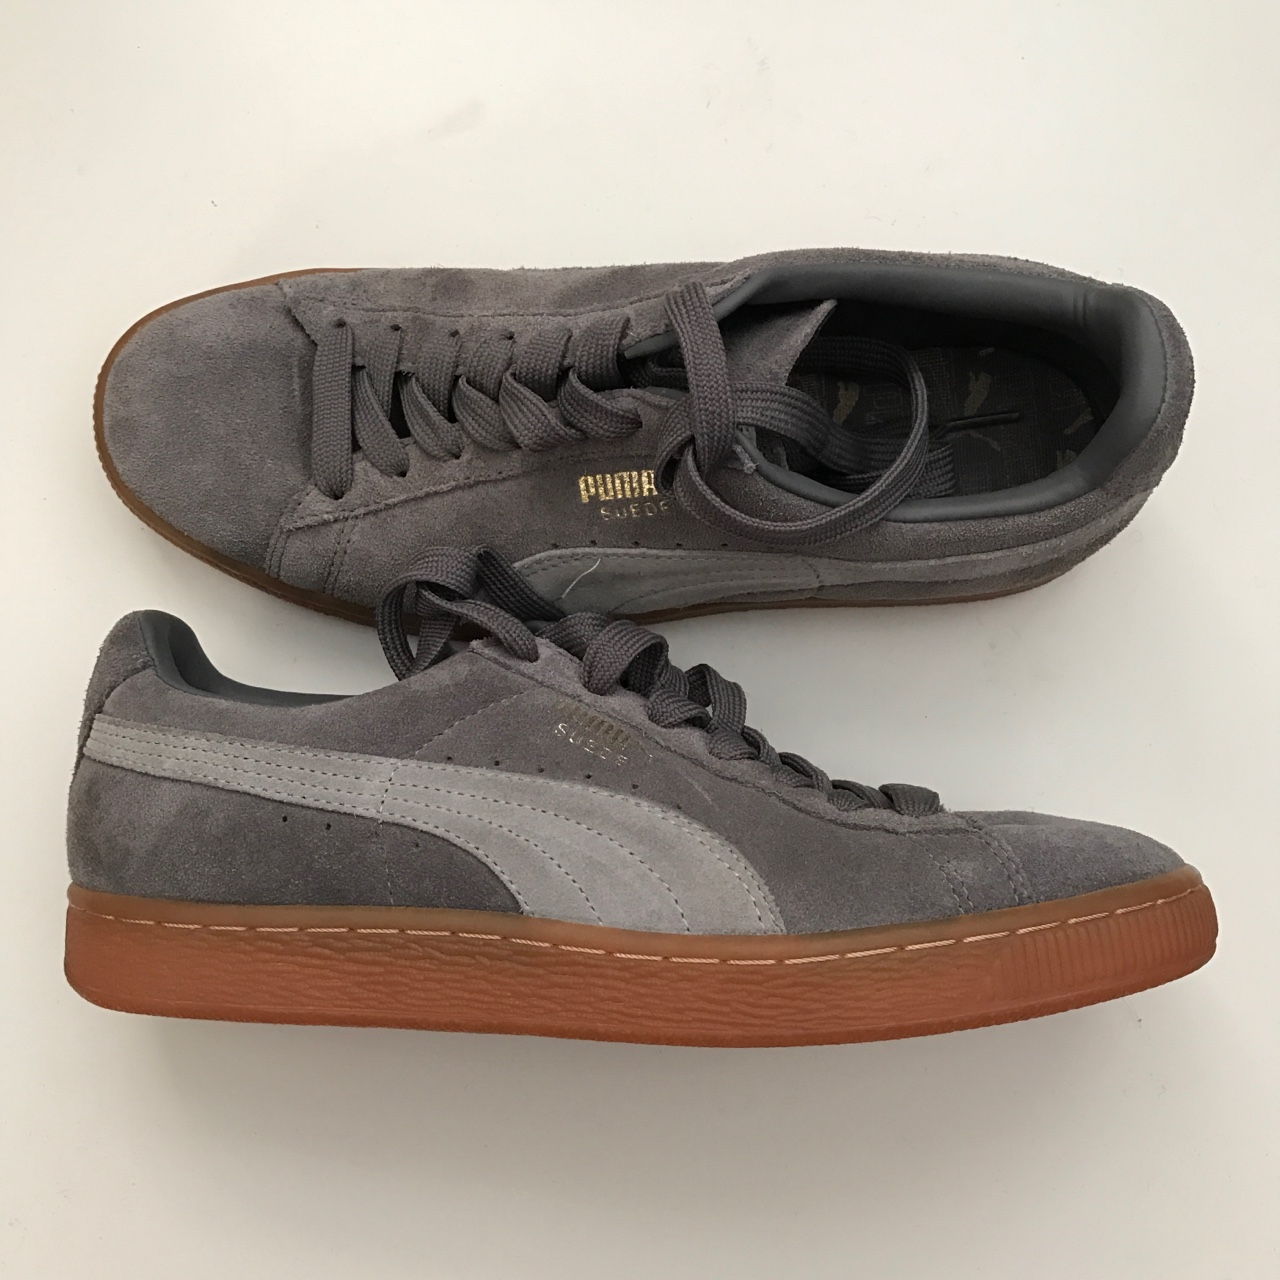 timeless design 21d77 406be Grey PUMA suede with gum sole -*BRAND NEW* never ...